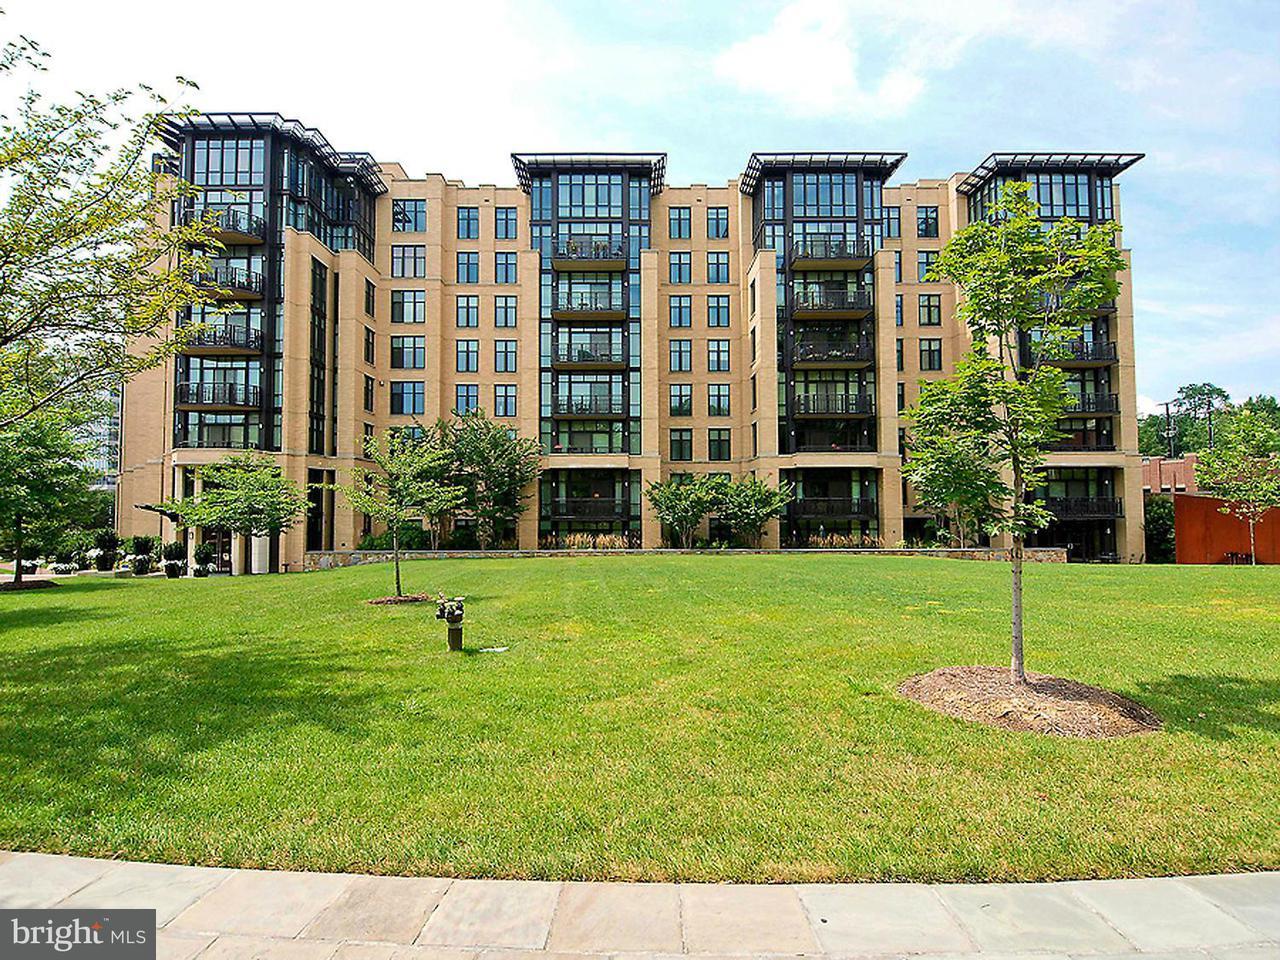 Condominium for Sale at 4301 Military Rd Nw #202 4301 Military Rd Nw #202 Washington, District Of Columbia 20015 United States